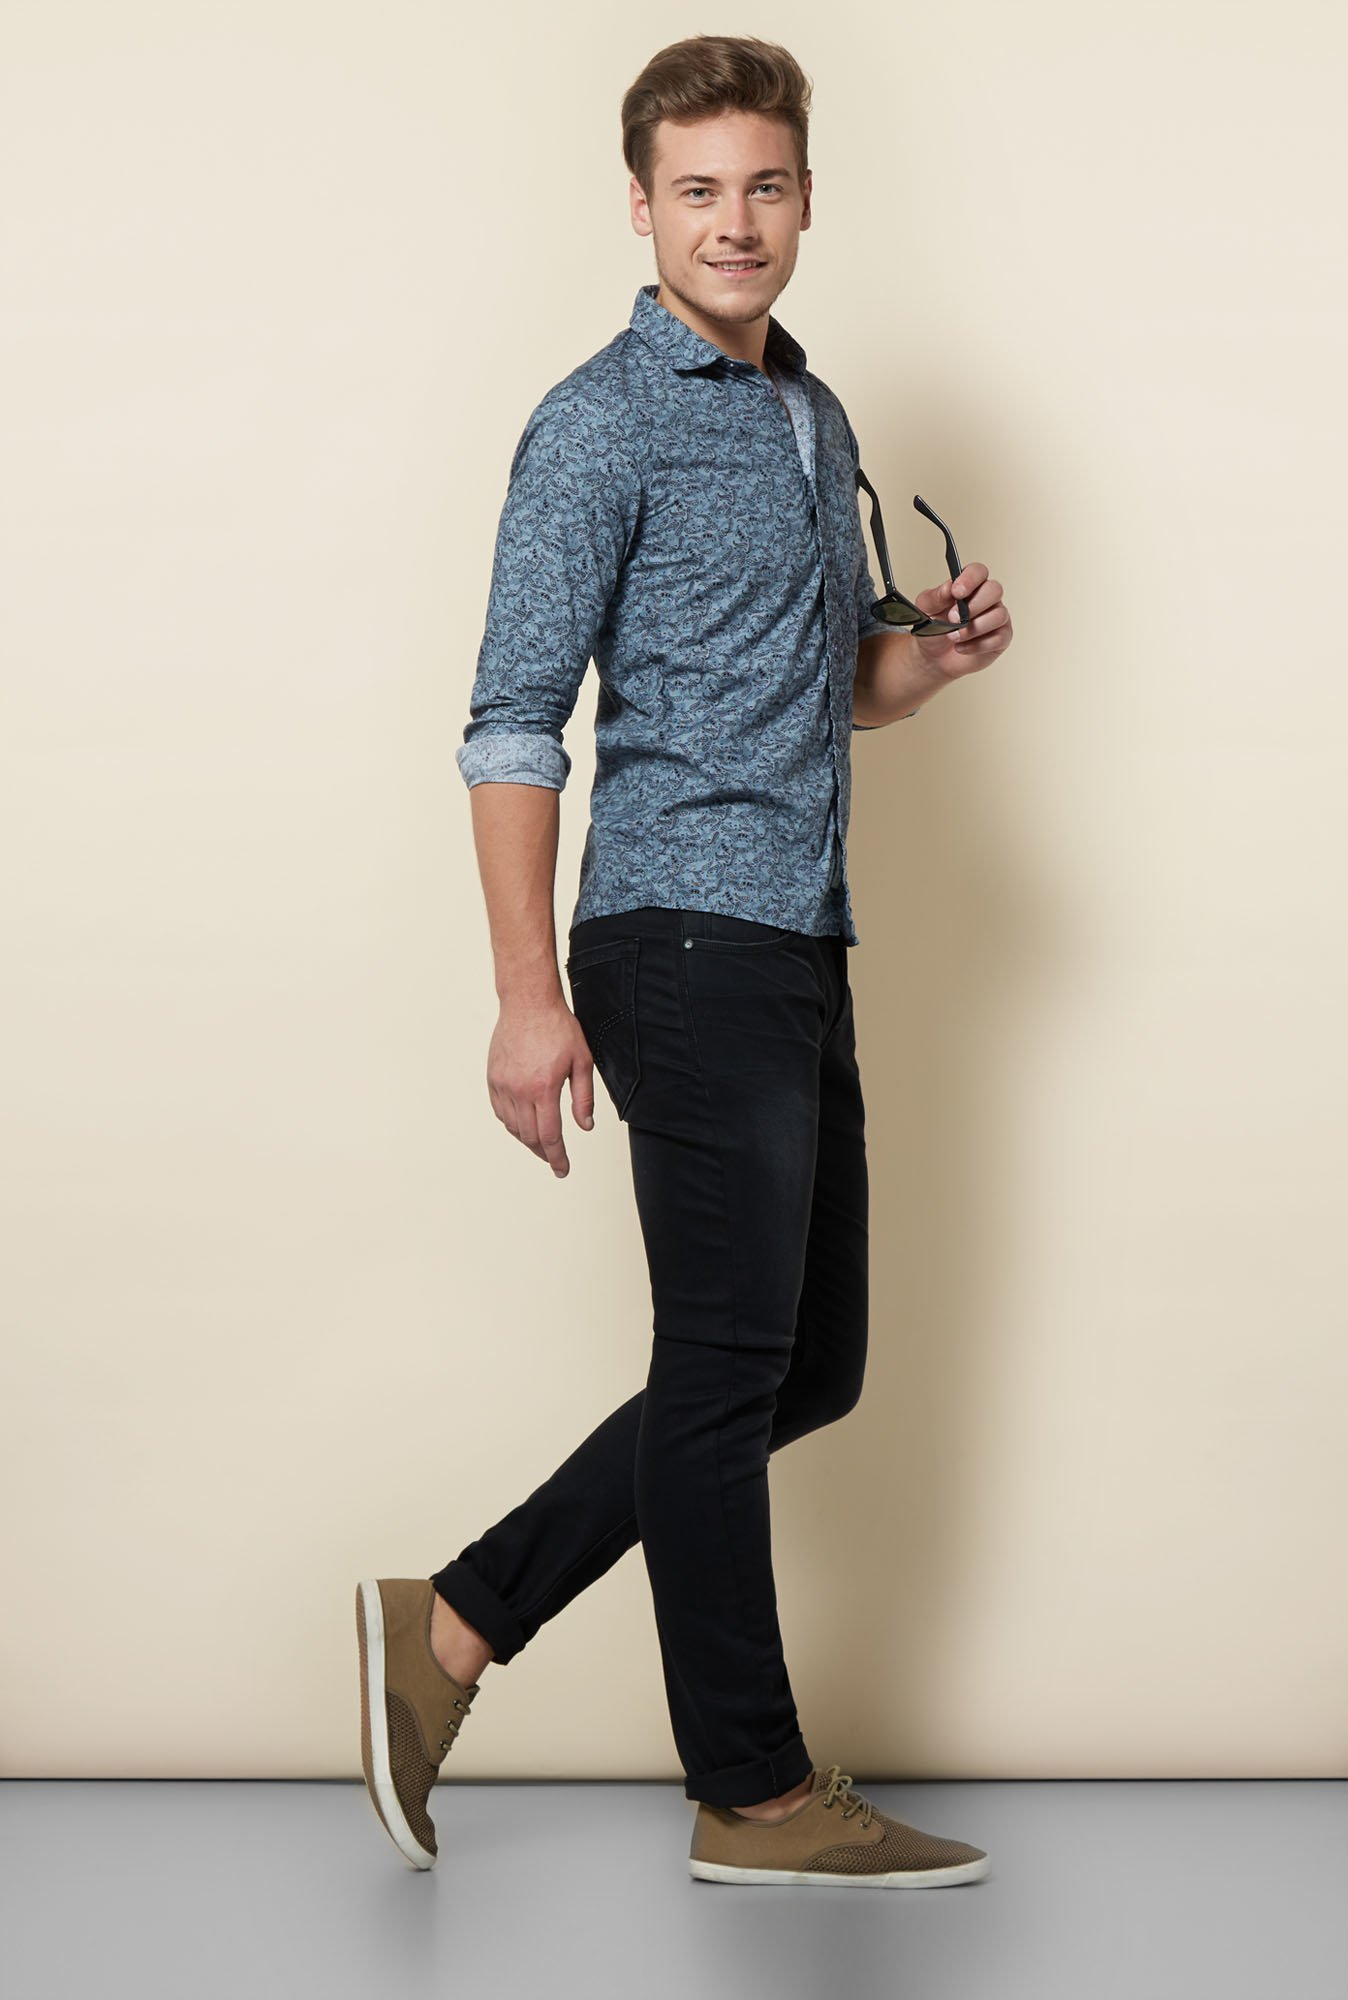 Integriti Grey Paisley Printed Shirt